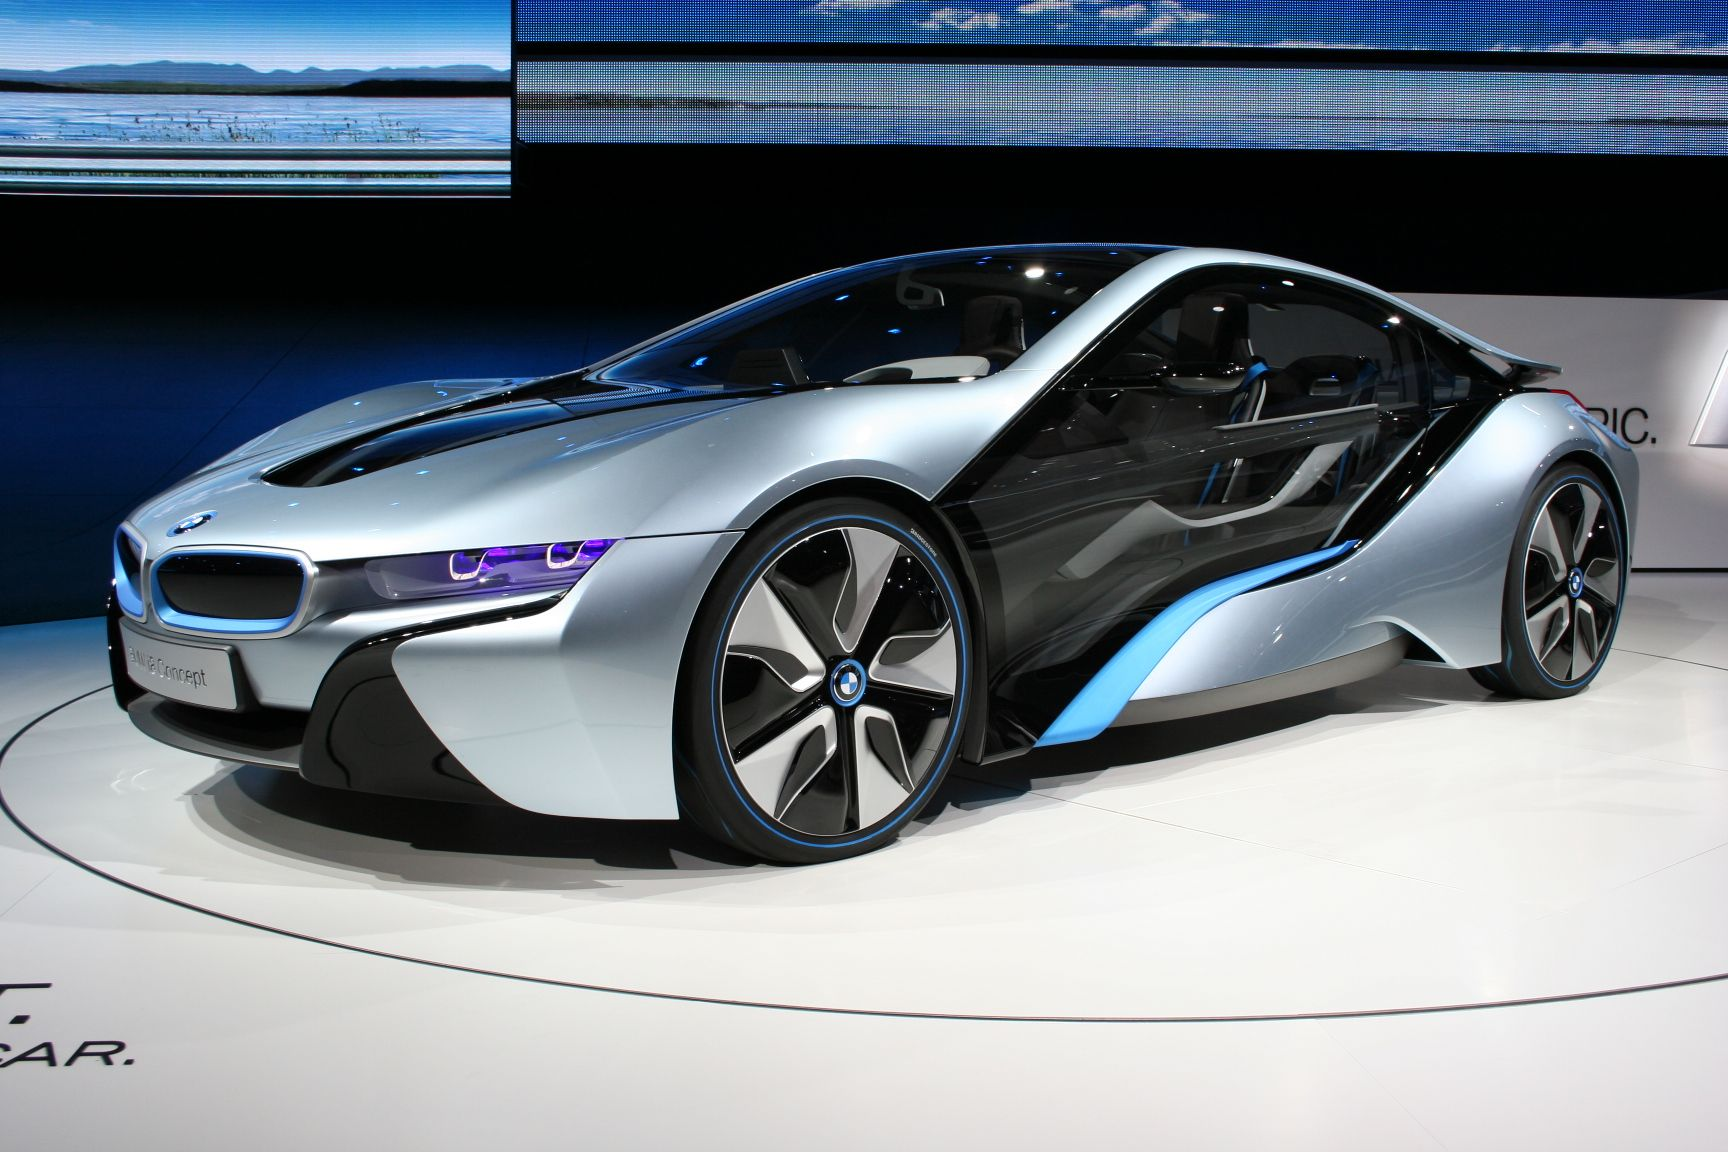 Bmw I8 Concept One Of The Most Beautiful Cars I Have Ever Seen